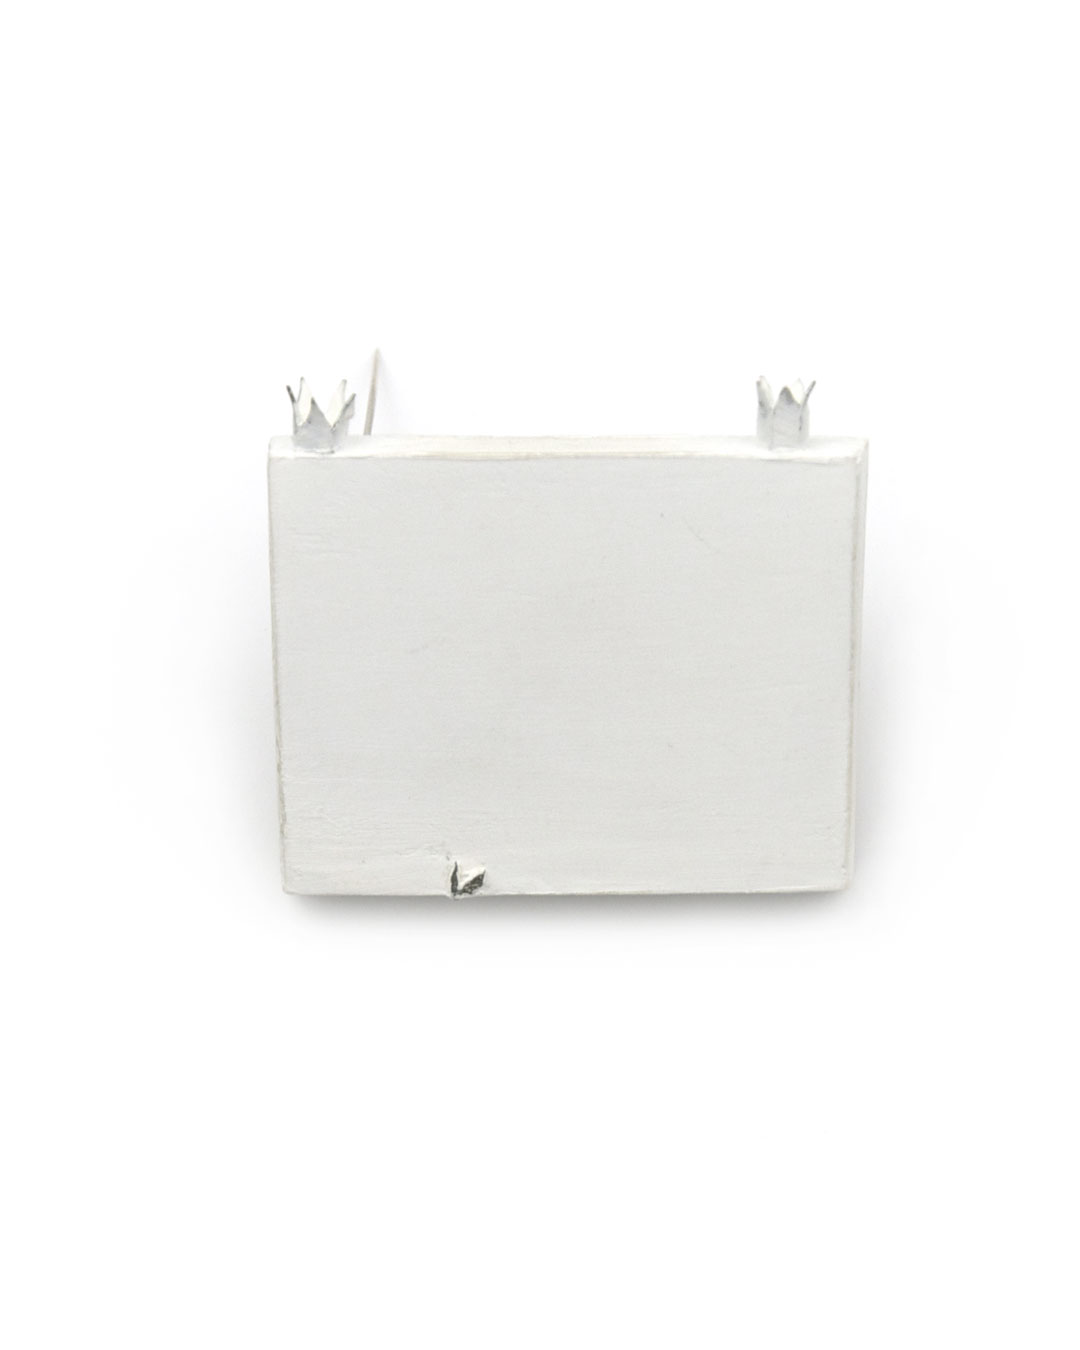 Piret Hirv, Letters of Flora 6, 1999, brooch; silver, paint, 43 x 50 x 11 mm, €415